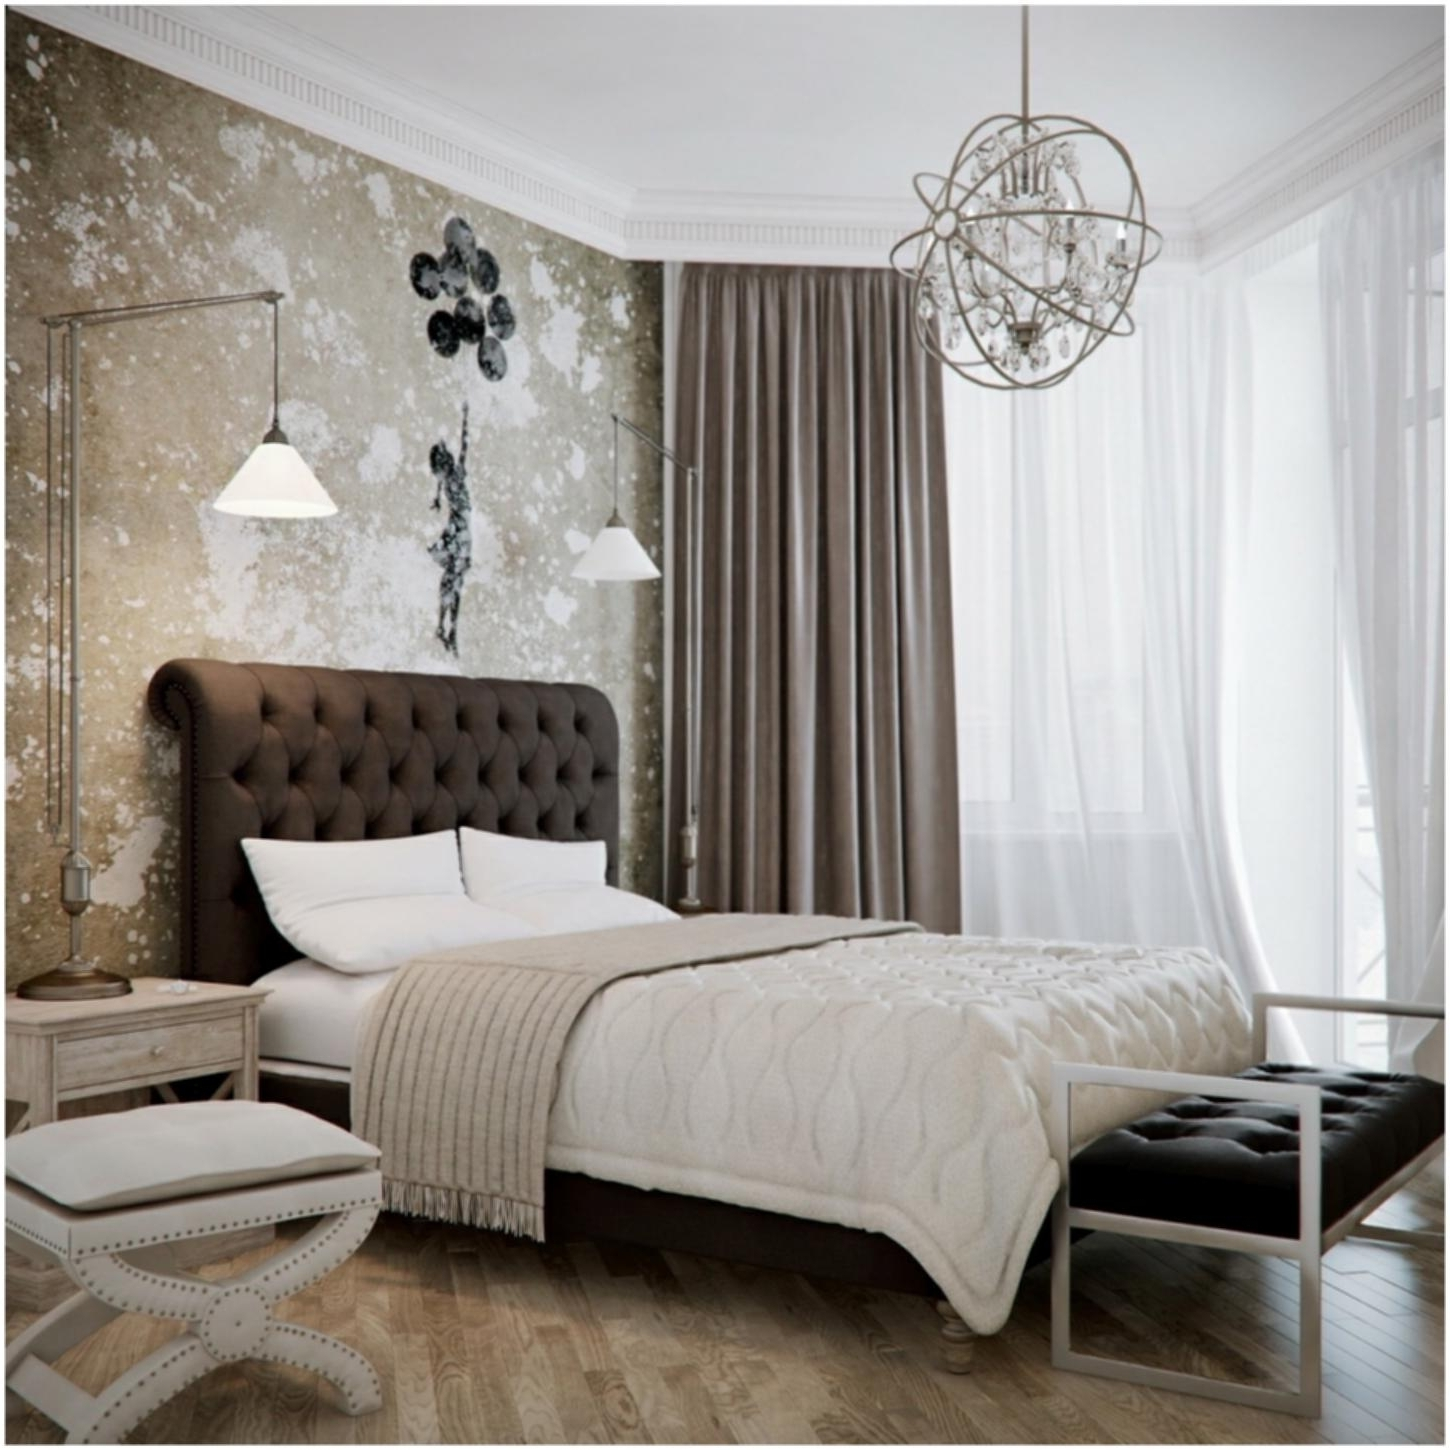 Black Chandelier Bedroom – House Designs Photos Throughout Fashionable Black Chandelier Bedroom (View 14 of 20)